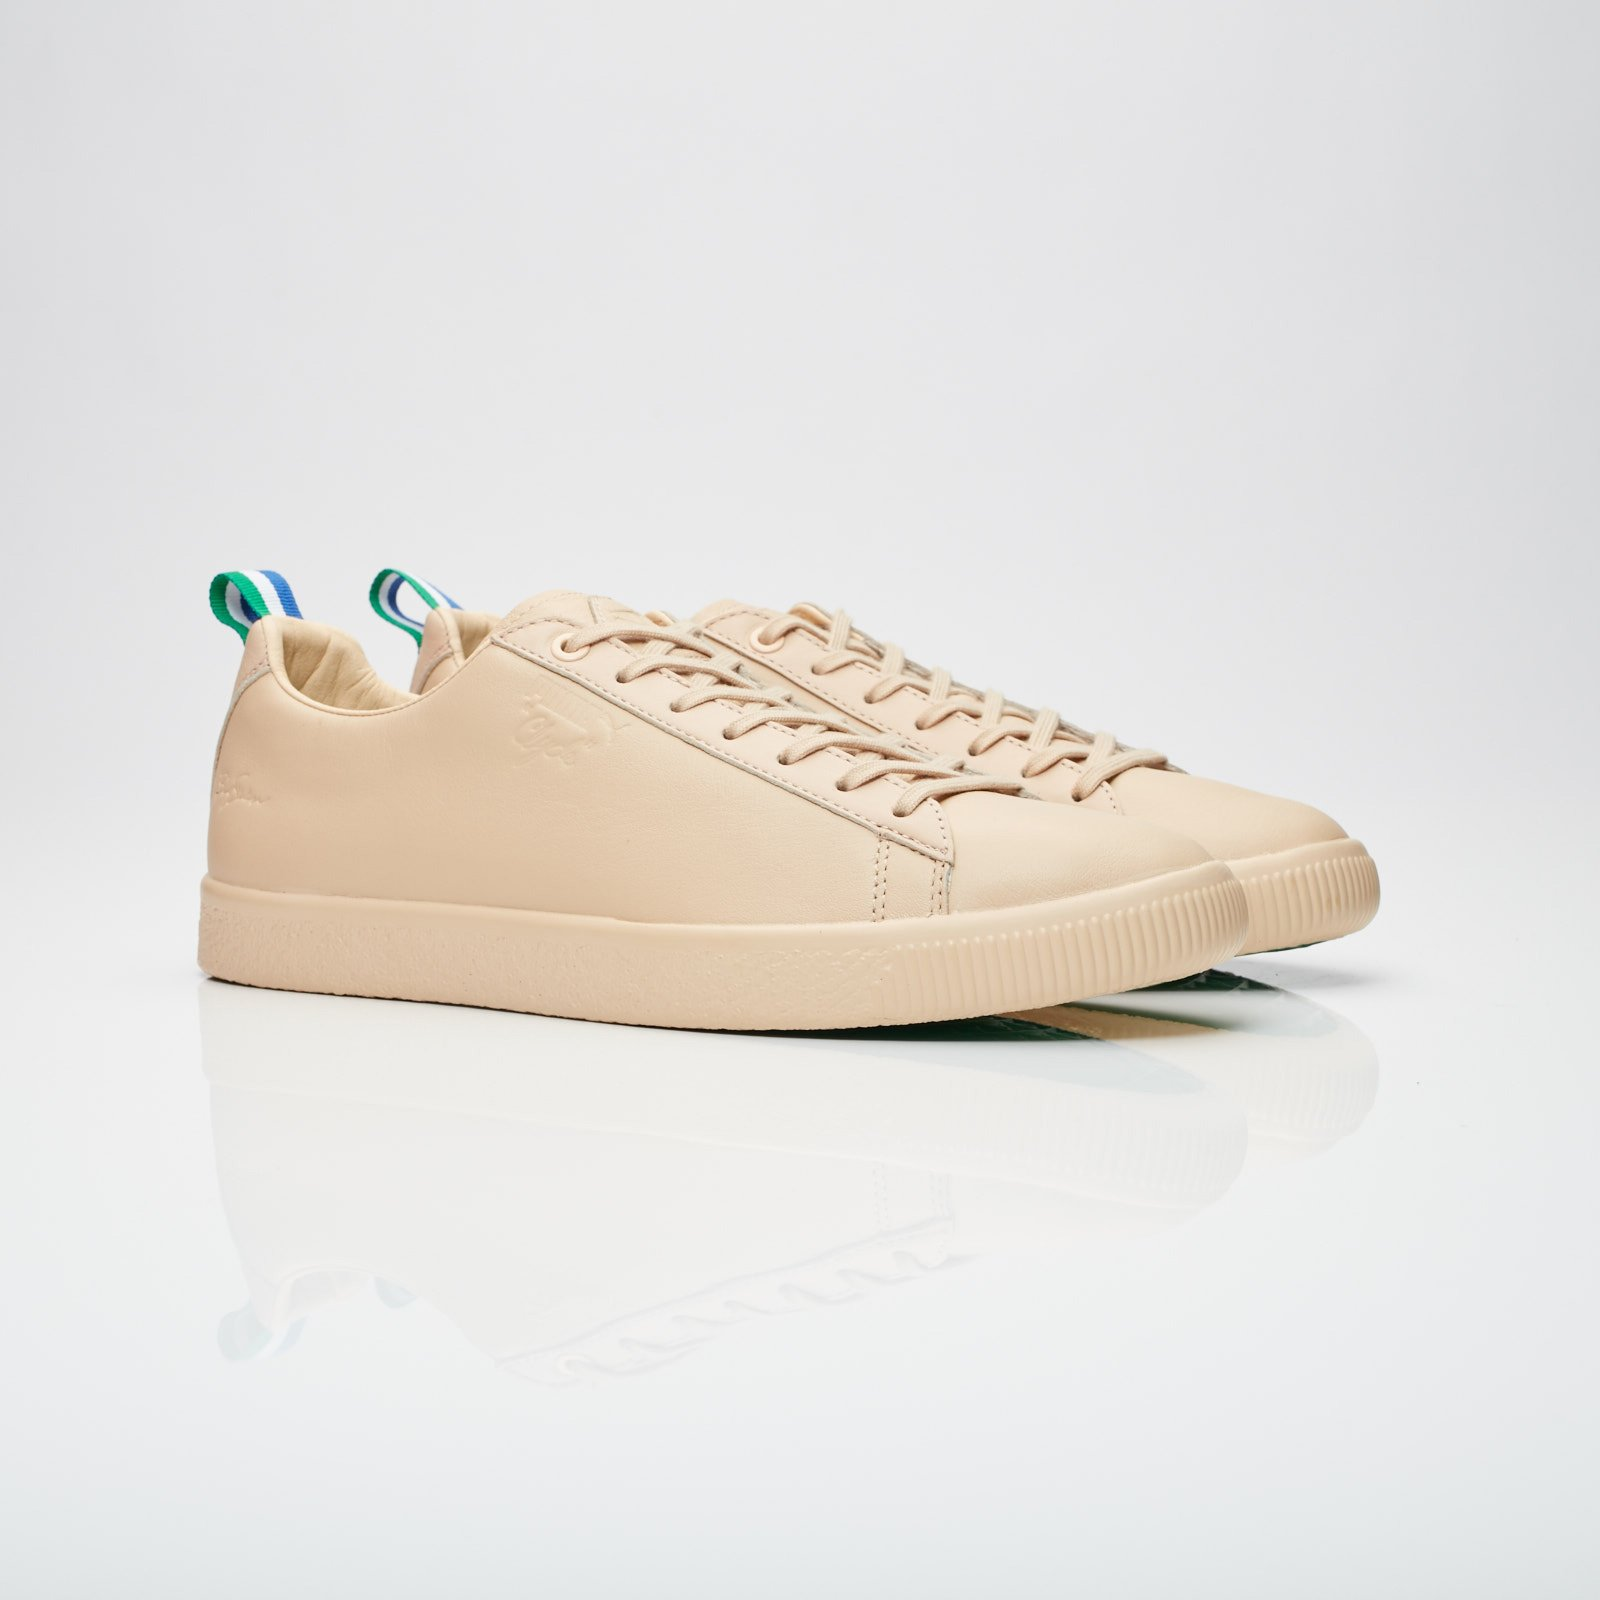 1287ab3285c Puma Clyde Big Sean - 366253-01 - Sneakersnstuff